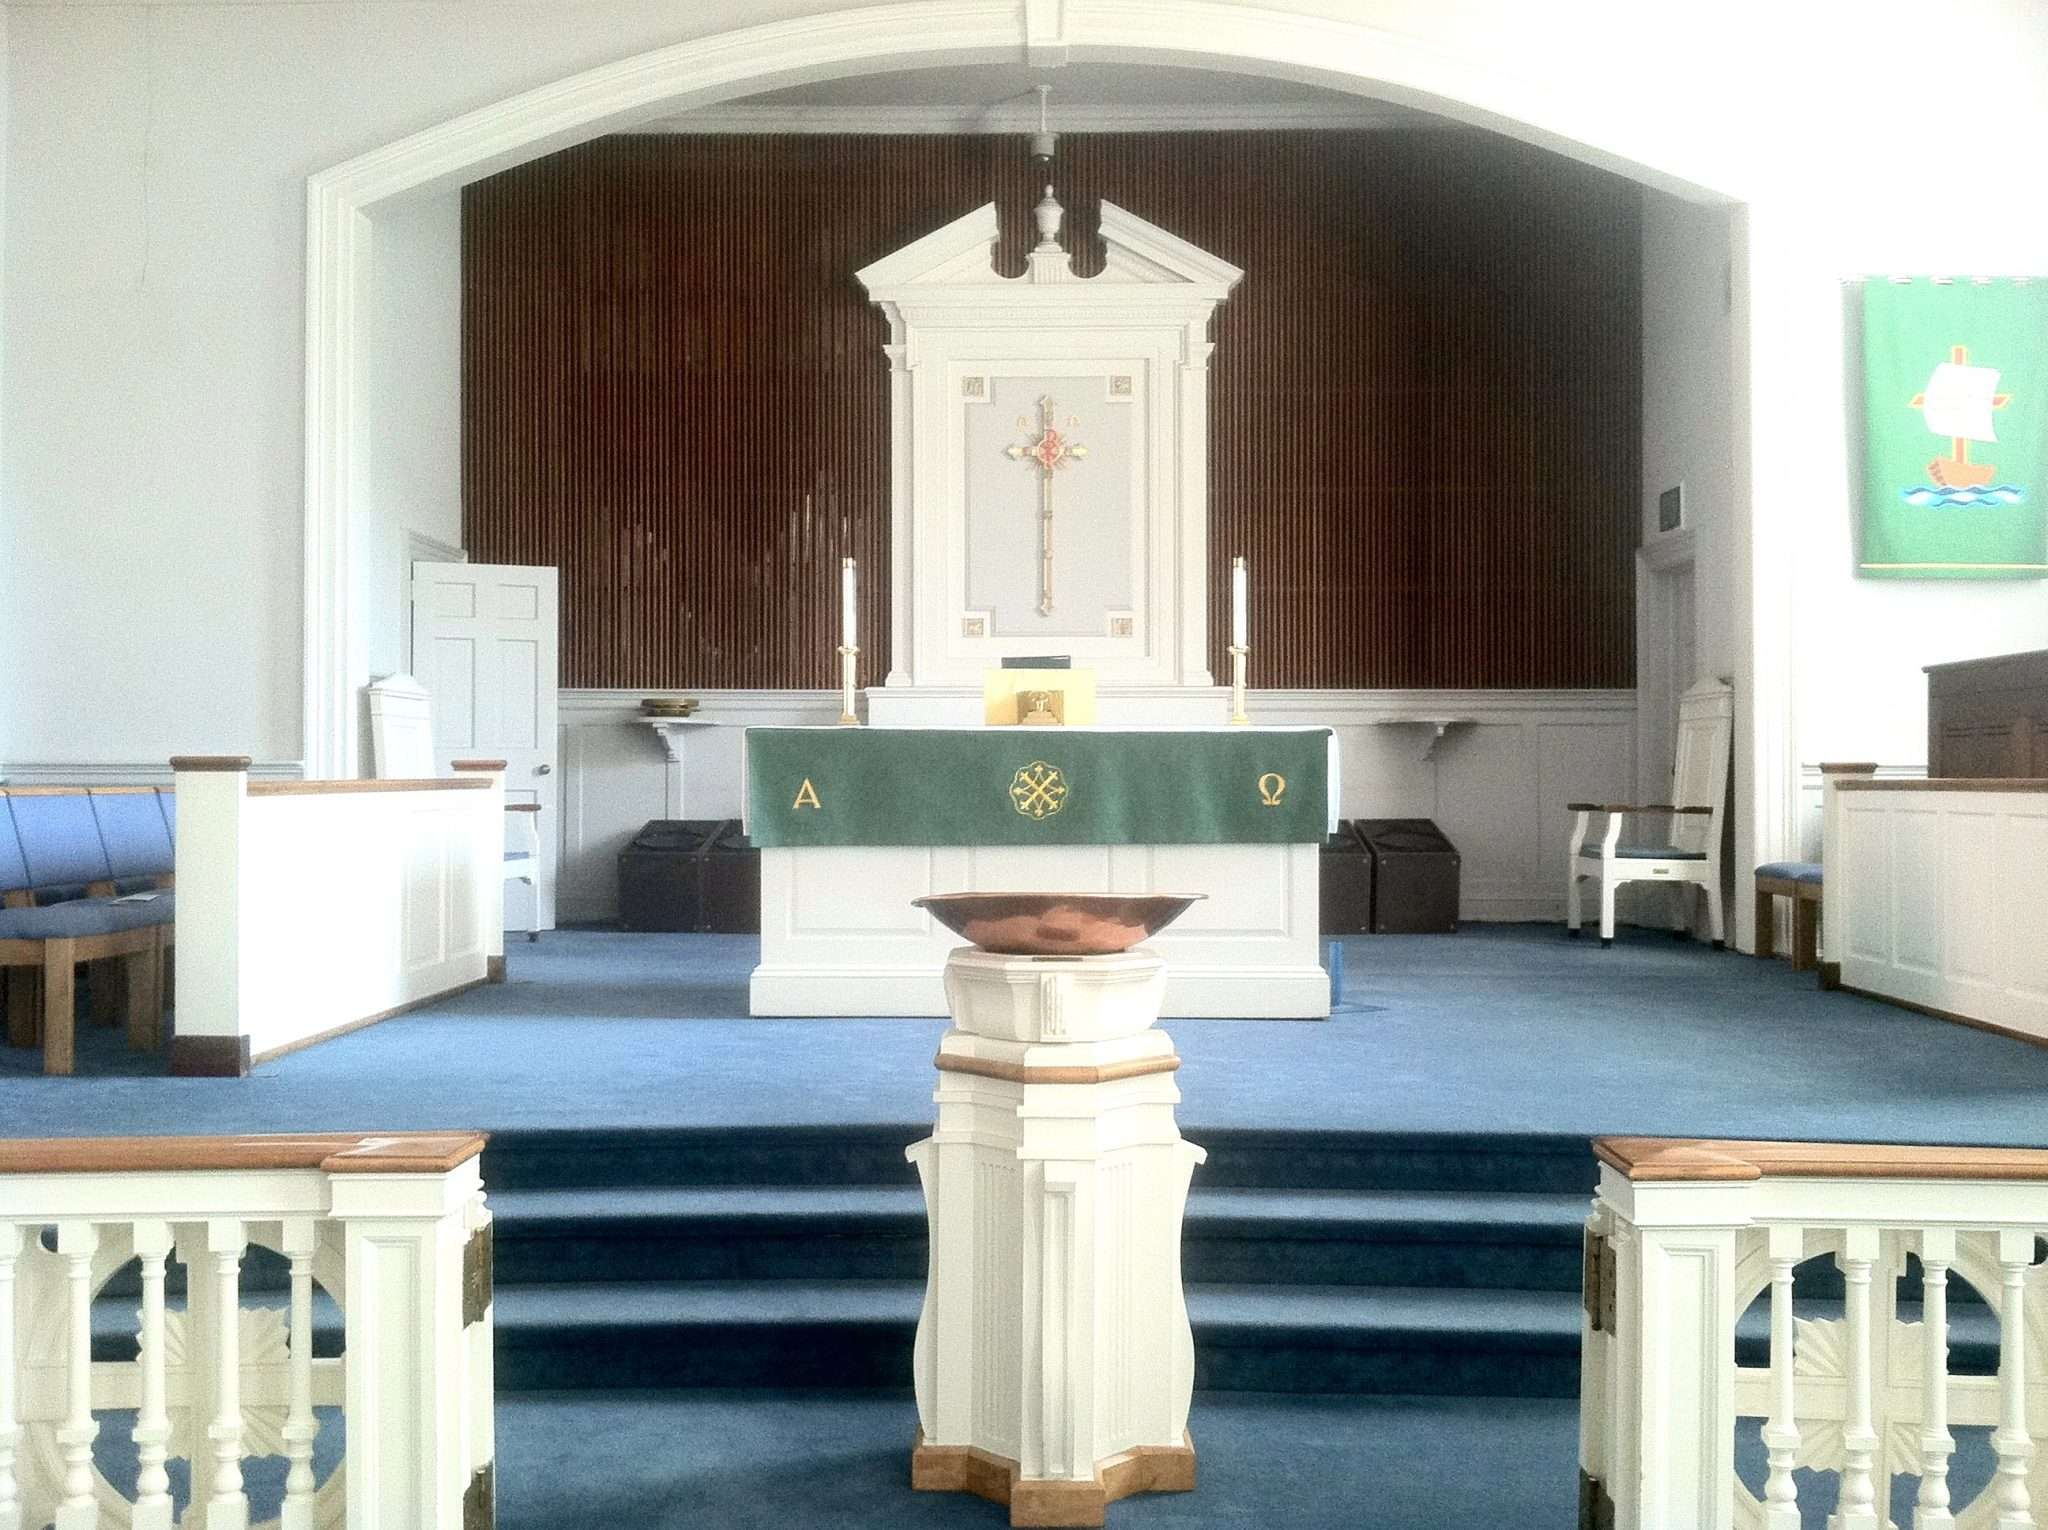 Lutheran Church in Haddonfield received a refresh